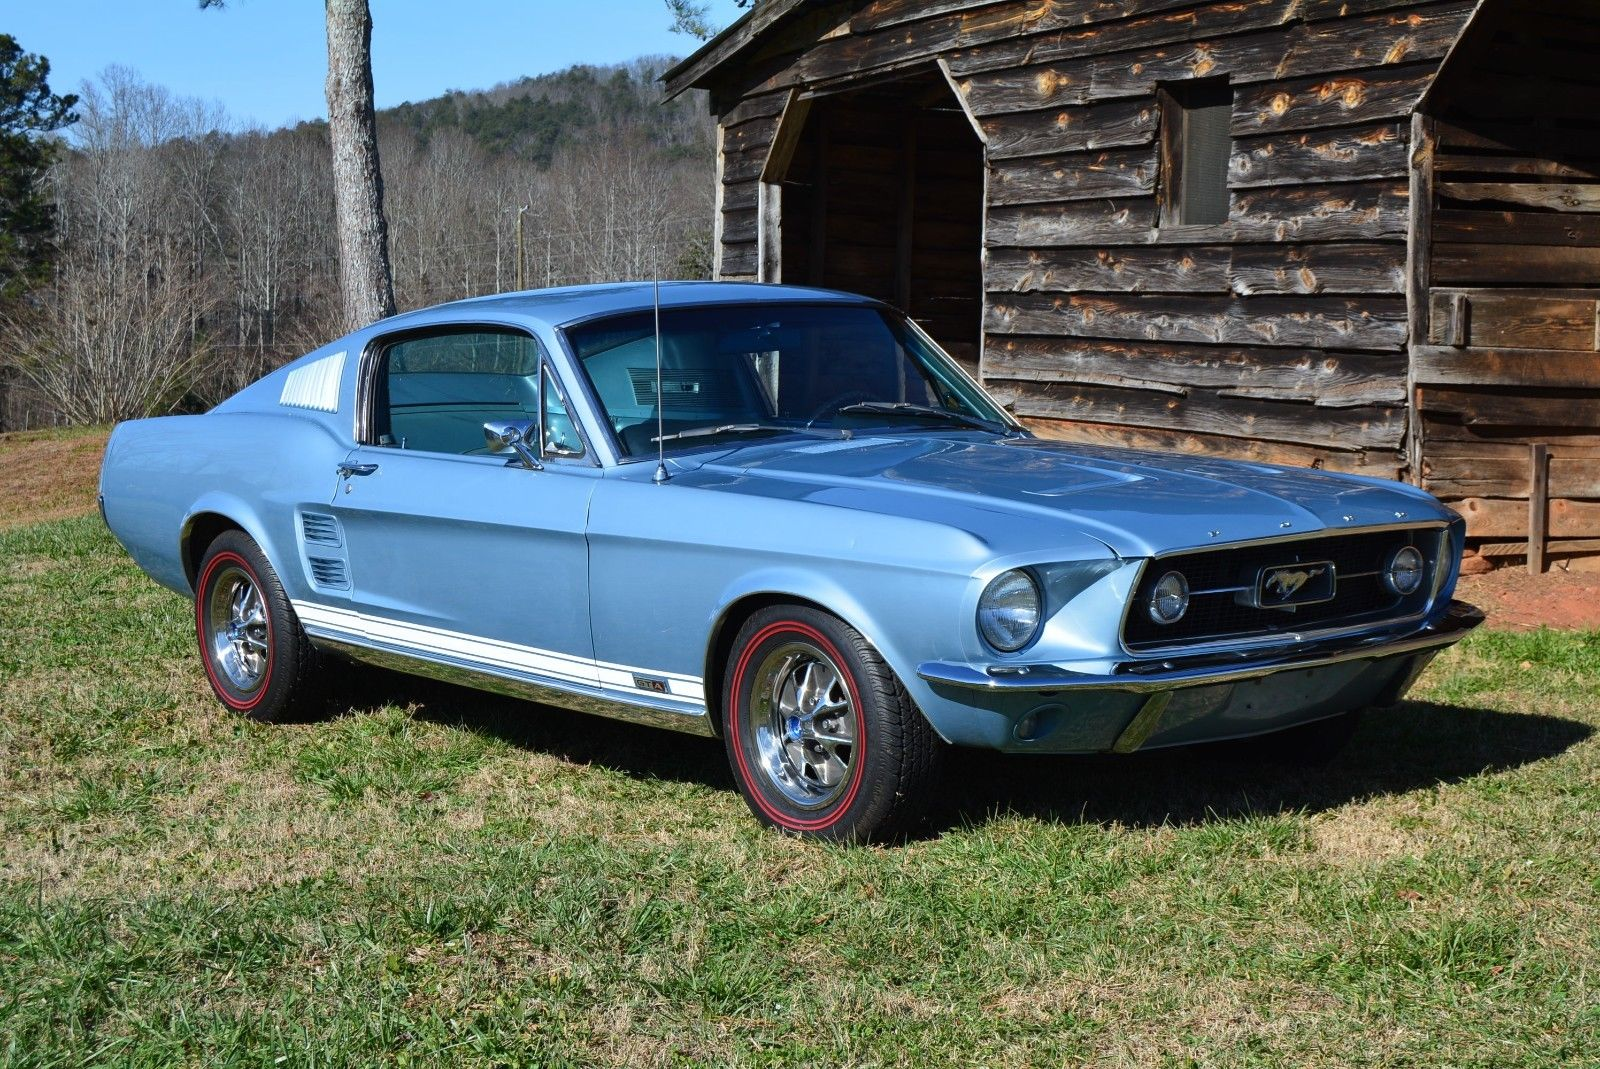 Amazing 1967 ford mustang fastback gta 1967 ford mustang gta fastback 289 2017 2018